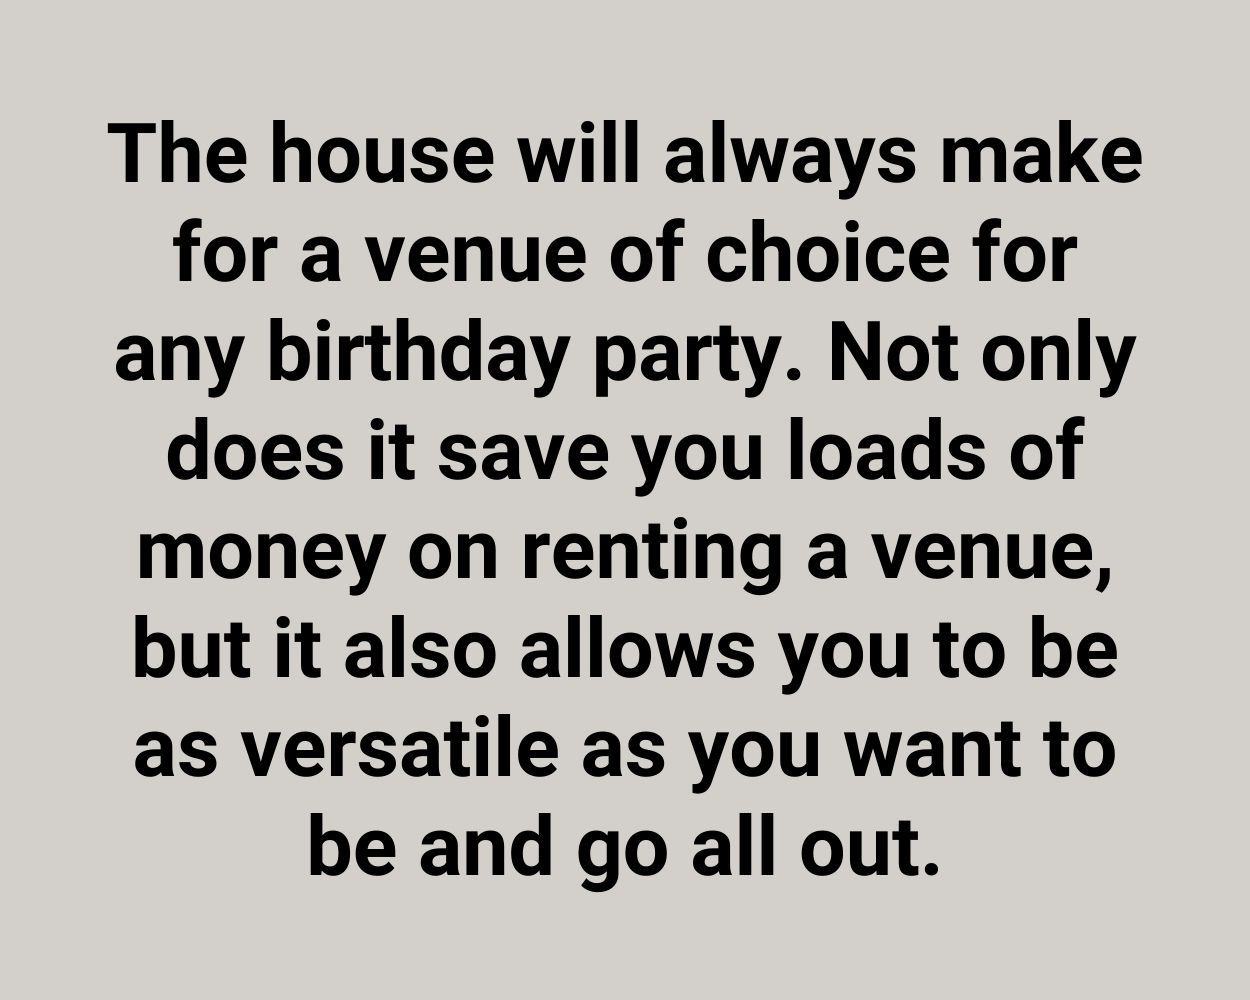 The house will always make for a venue of choice for any birthday party. Not only does it save you loads of money on renting a venue, but it also allows you to be as versatile as you want to be and go all out.